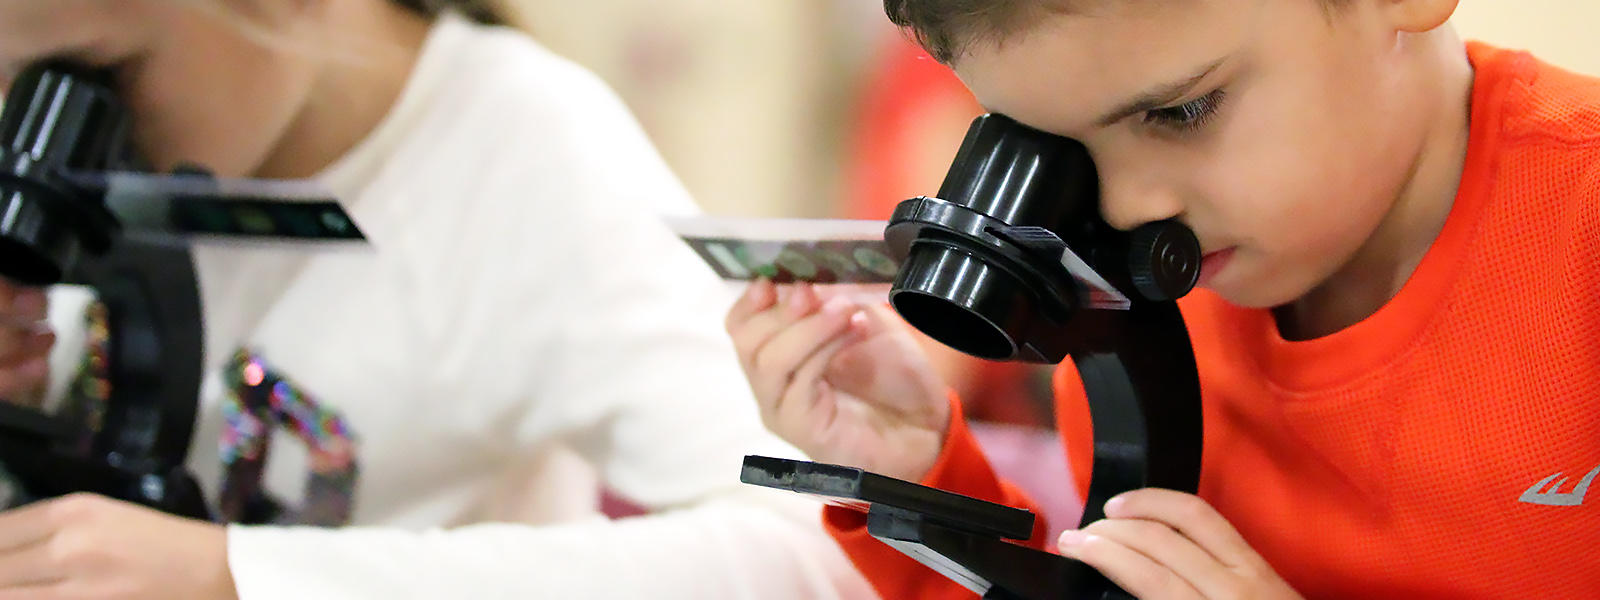 A District 401 elementary student looks through a microscope.